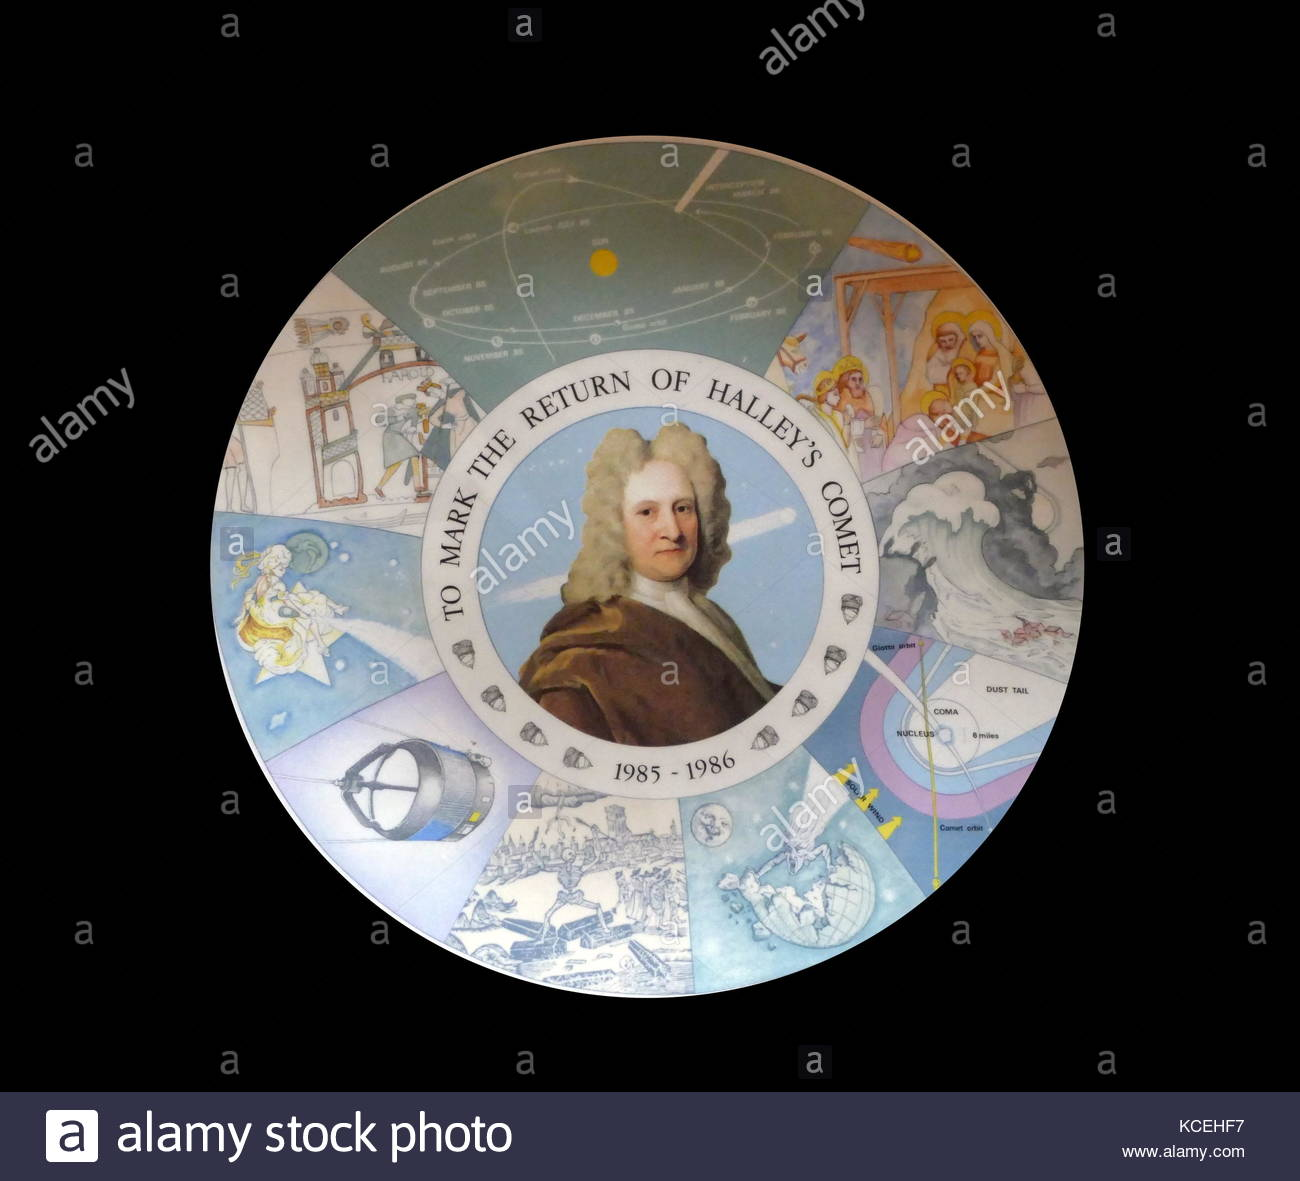 Portrait of Sir Edmund Halley on a commemorative plate to mark the return of Halley's Comet 185-86 - Stock Image